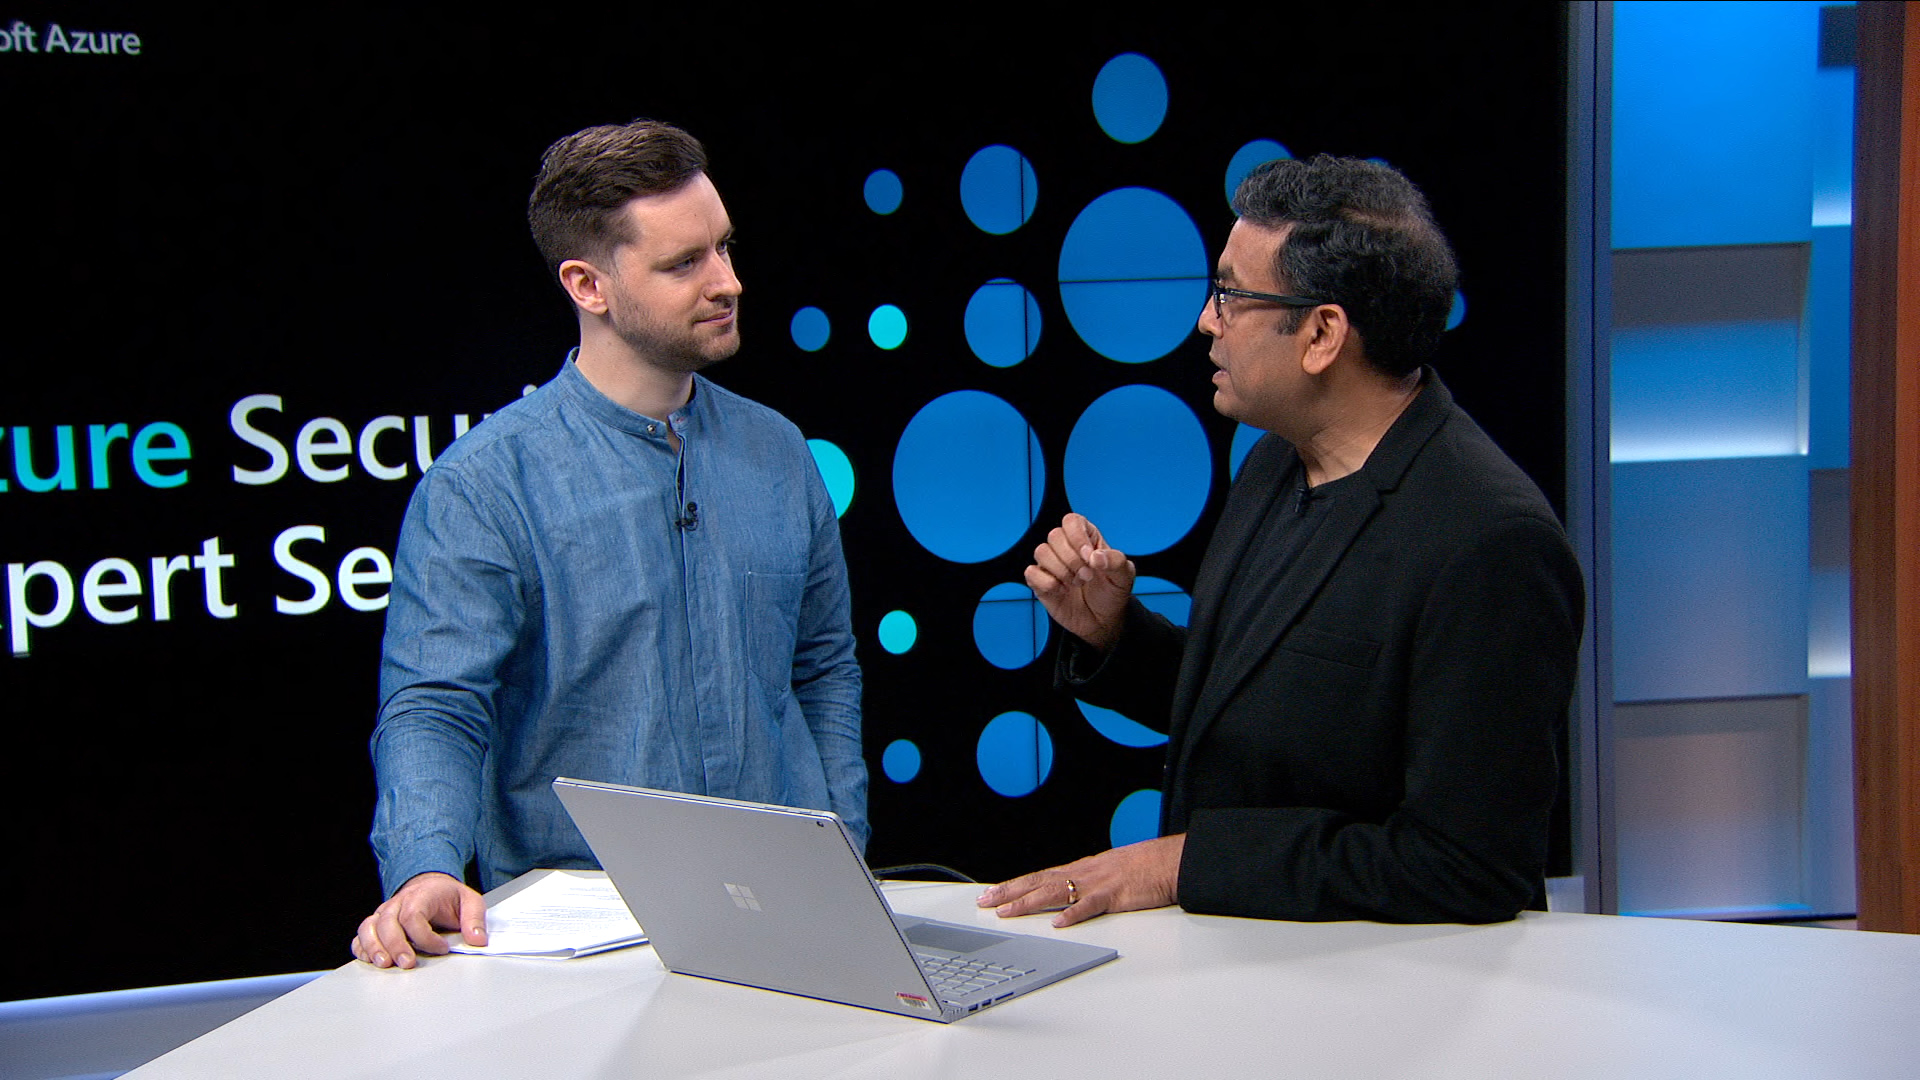 How does Azure Security Center help you manage IoT | Azure IoT Part 3